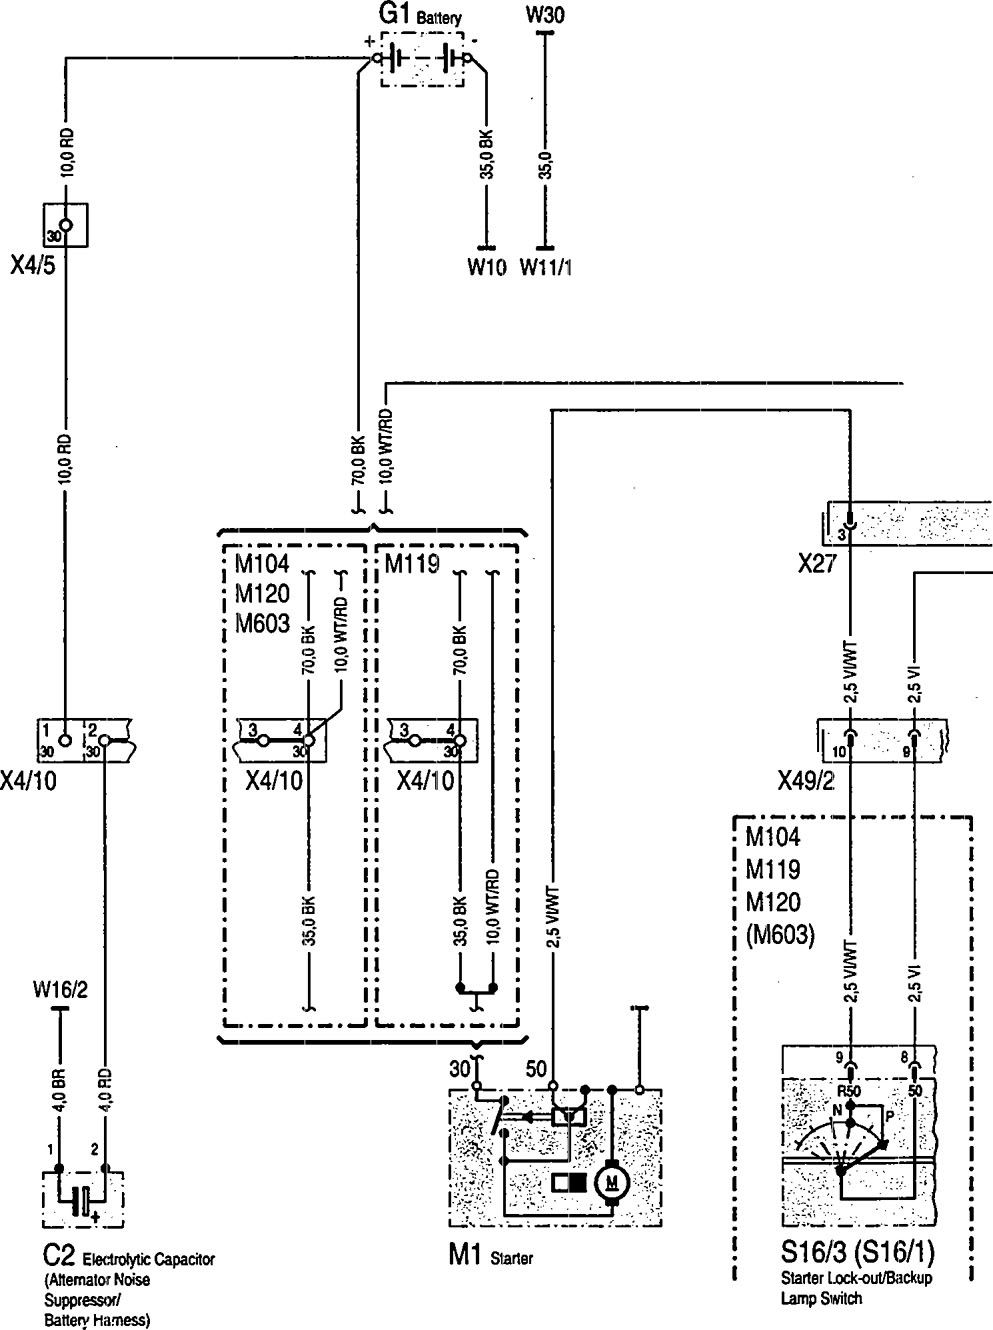 mercedes-benz 300sd (1992 - 1993) - wiring diagrams - battery -  carknowledge.info  carknowledge.info